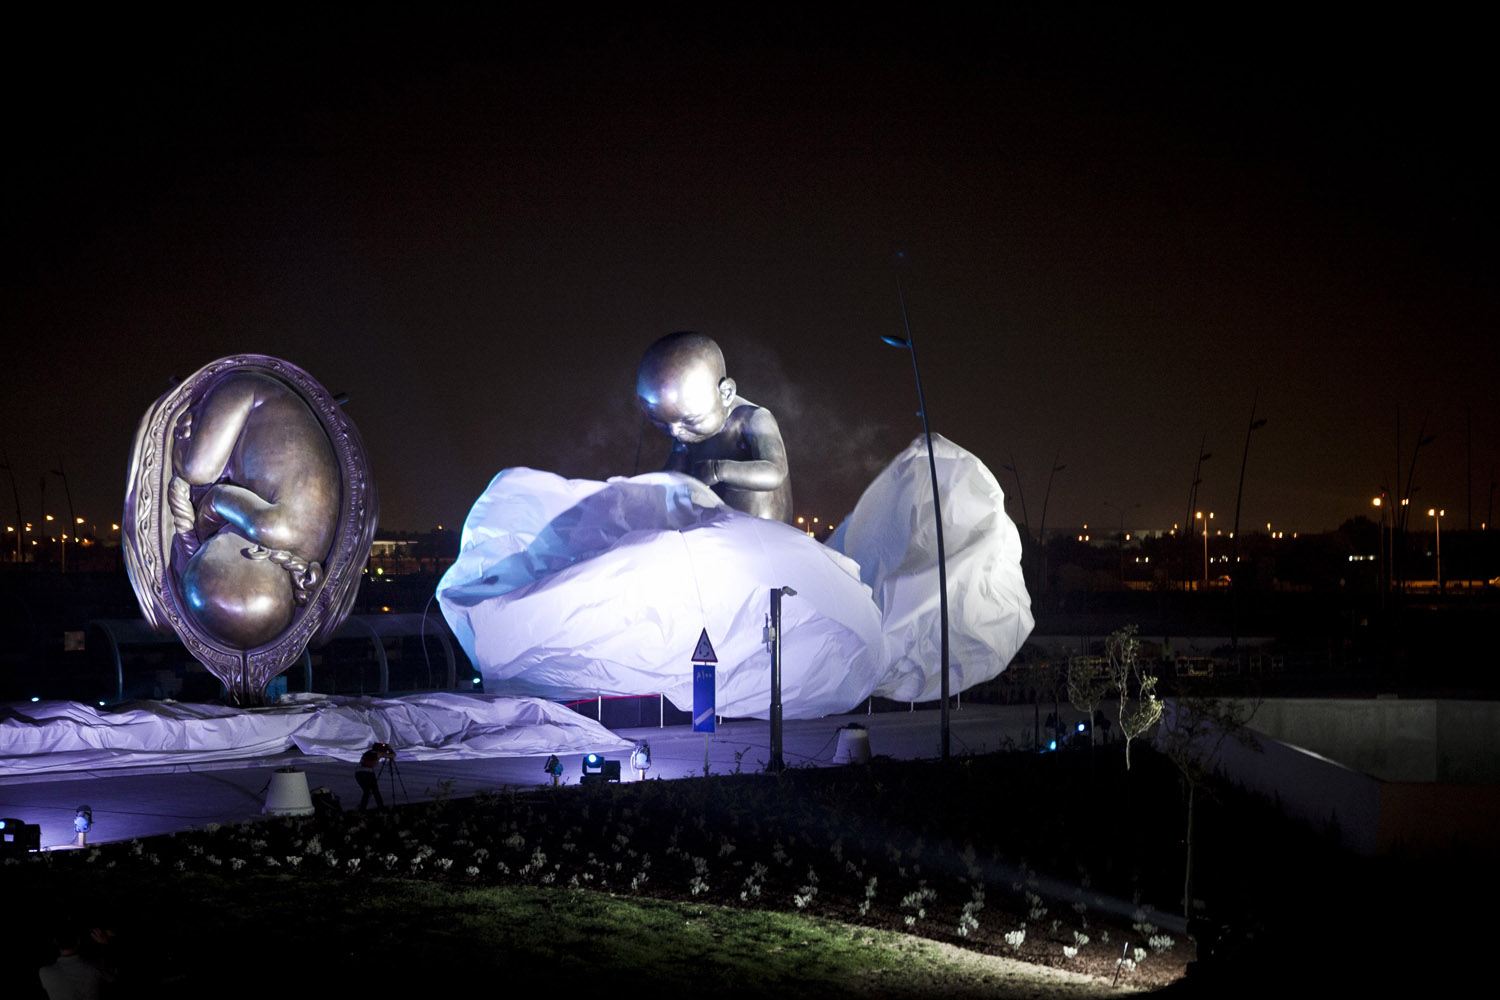 Oct. 7, 2013.  The Miraculous Journey,  by British artist Damien Hirst, is unveiled outside the Sidra Medical and Research Center in Doha, Qatar.